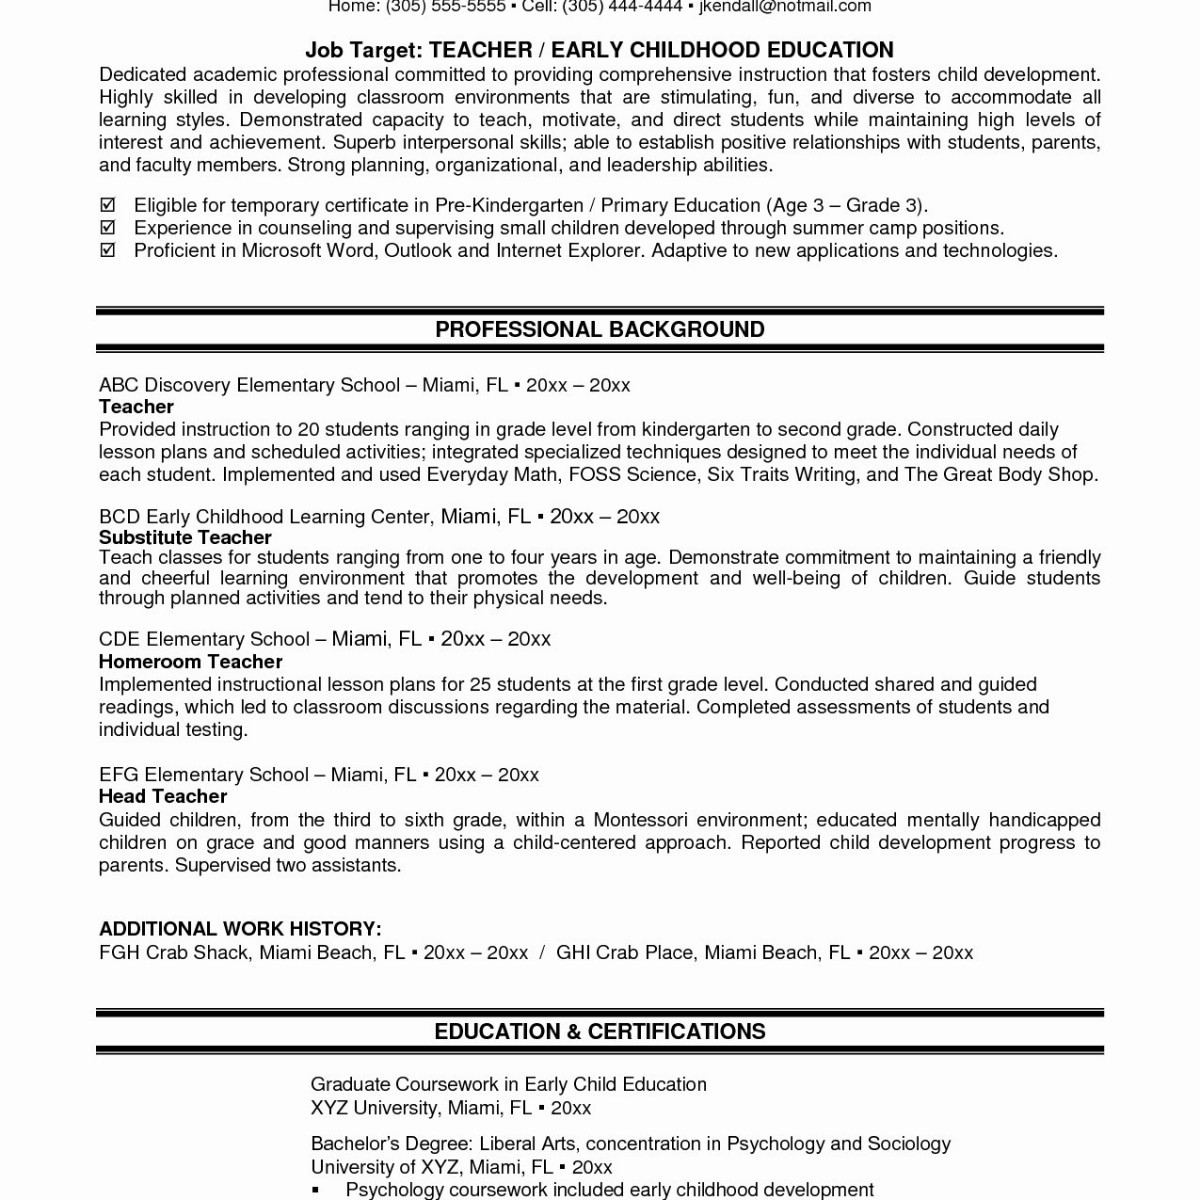 Masters Degree On Resume - 36 Cute Writing An Effective Resume Gallery Y2g